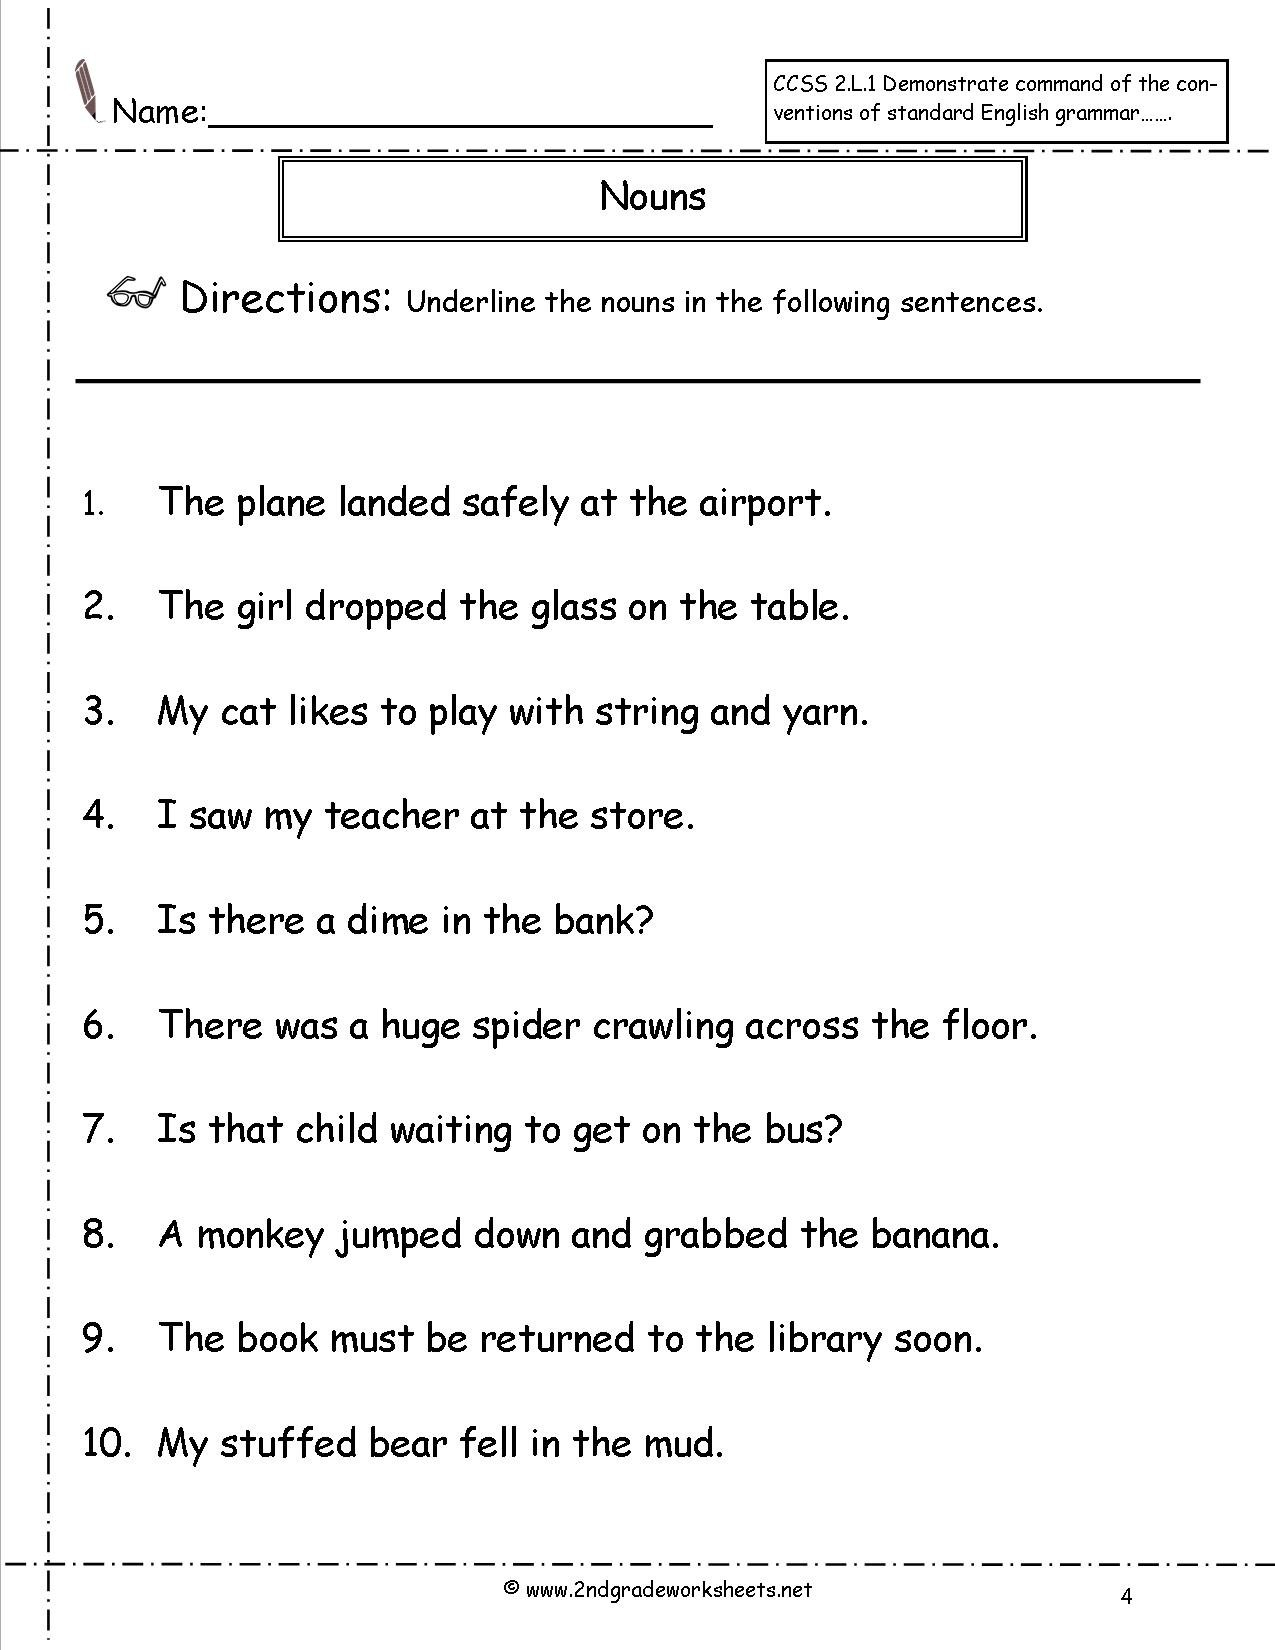 Nouns Worksheets And Printouts Intended For Noun Worksheets For Grade 1